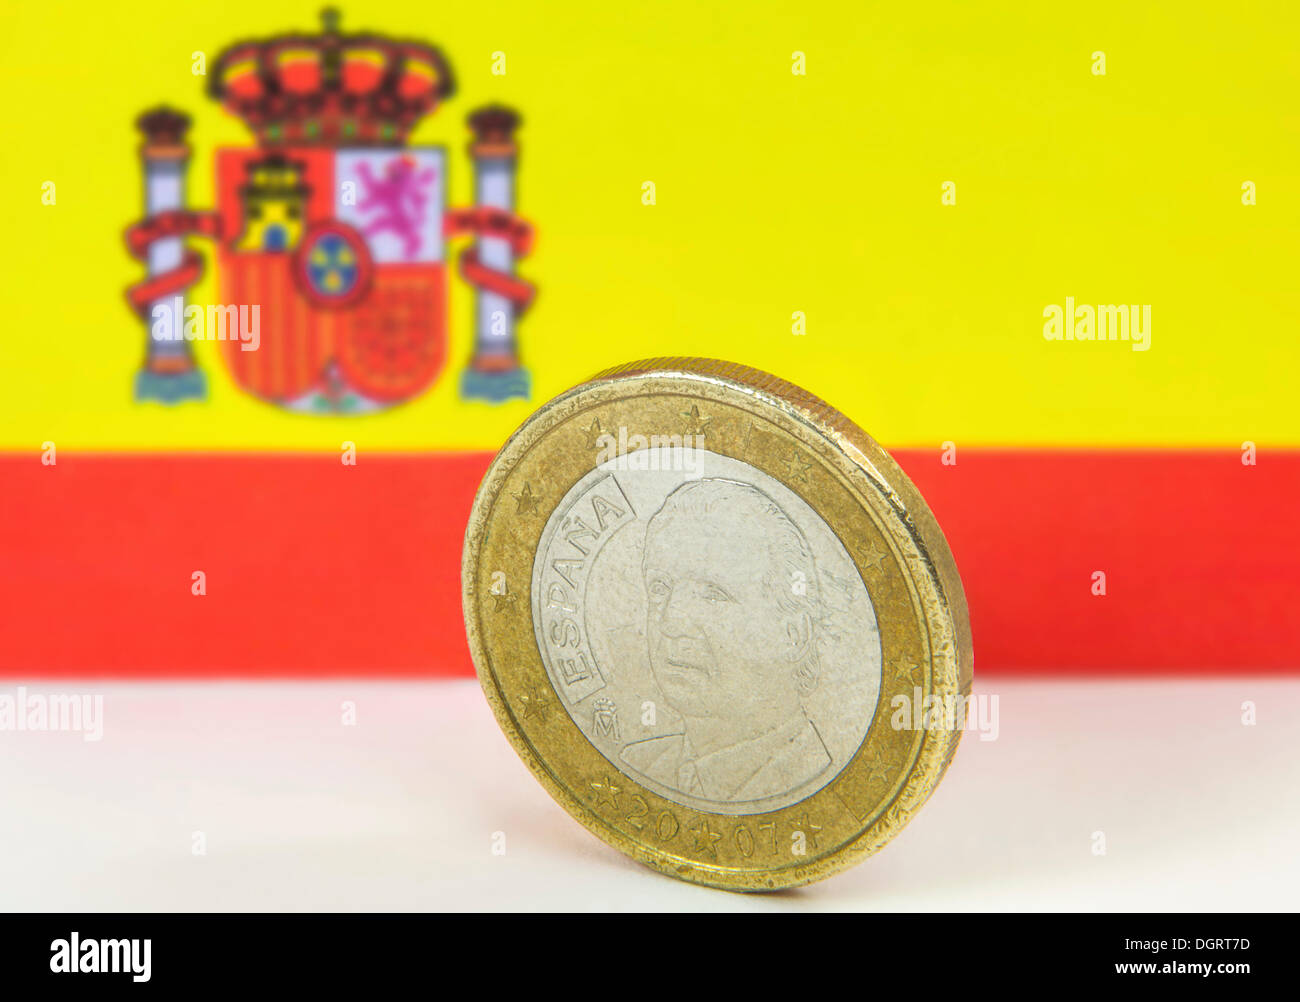 Old Spanish one euro coin in front of the Spanish flag - Stock Image